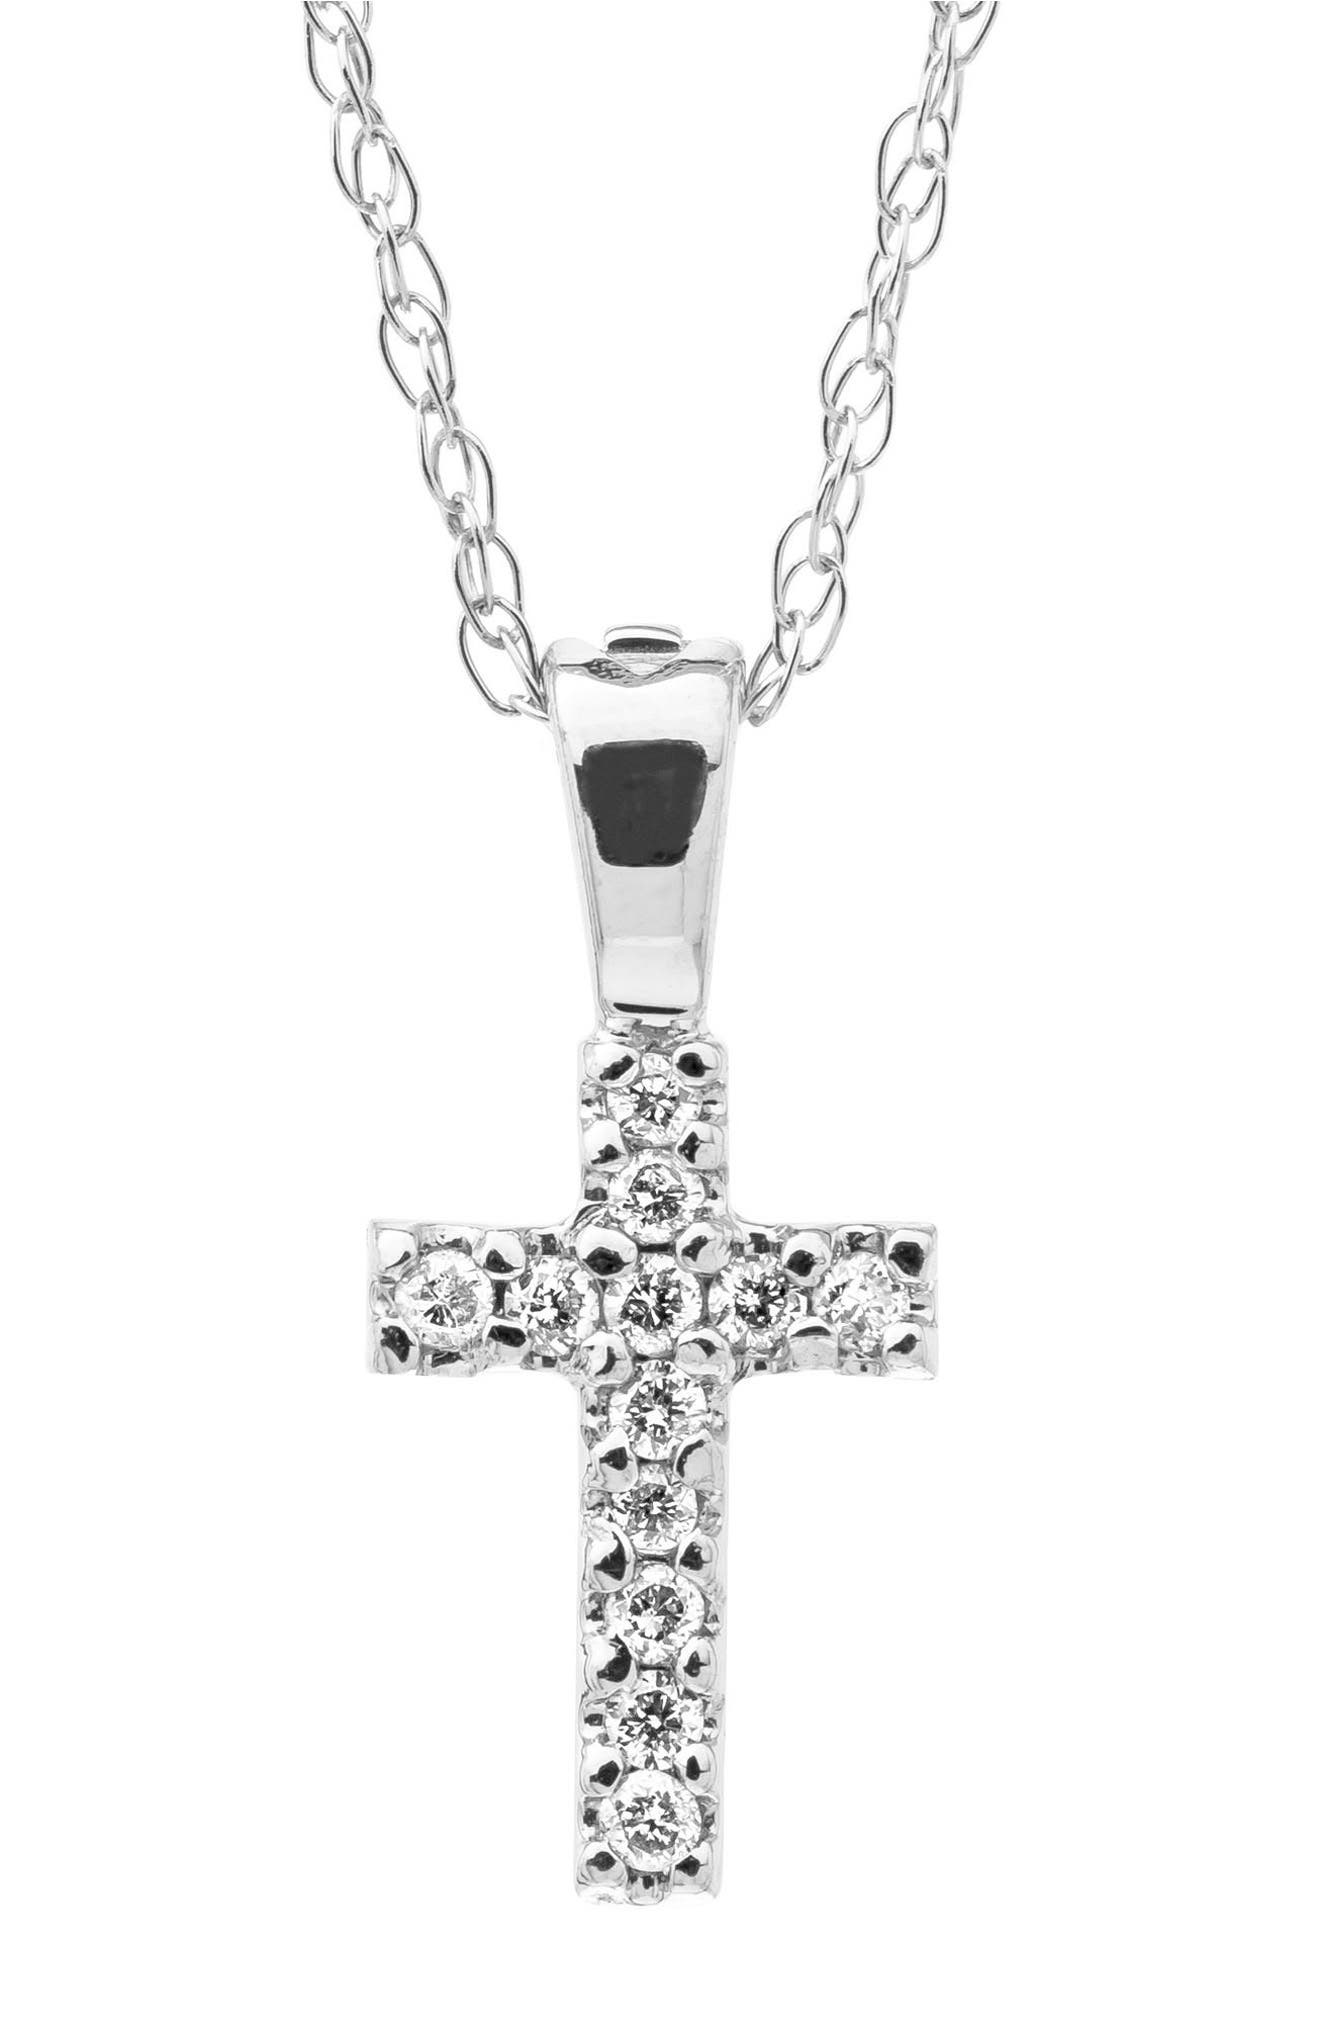 14k White Gold & Diamond Cross Necklace,                             Main thumbnail 1, color,                             White